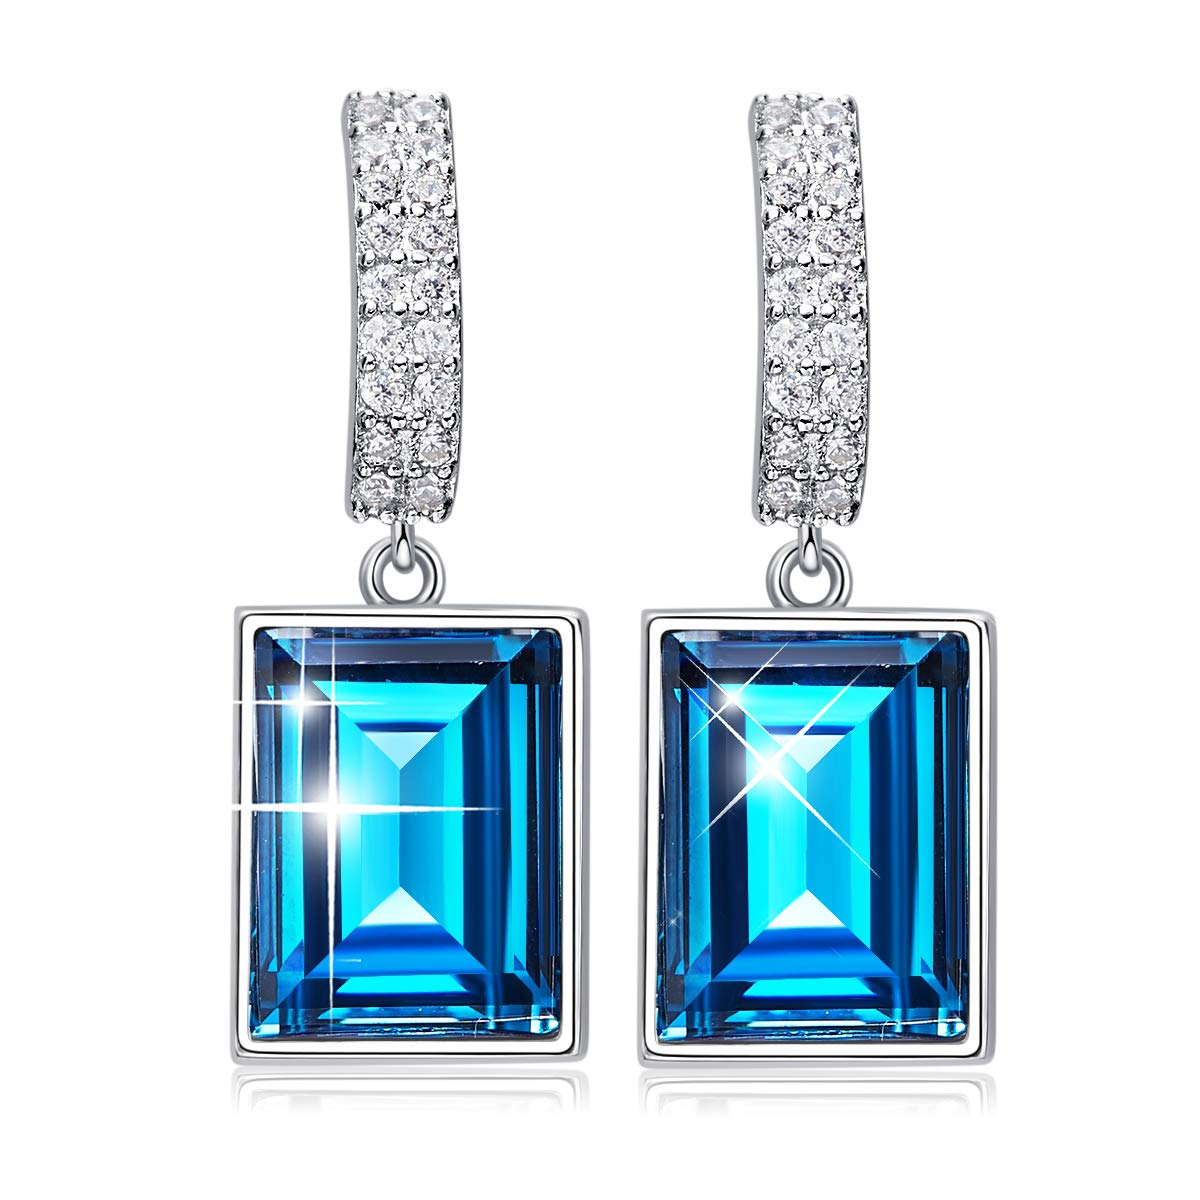 CDE 925 Sterling Silver Dangle Drop Earrings Swarovski Crystals Sapphire Fine Jewelry for Women Gift (Magical Meteorite) by CDE (Image #1)